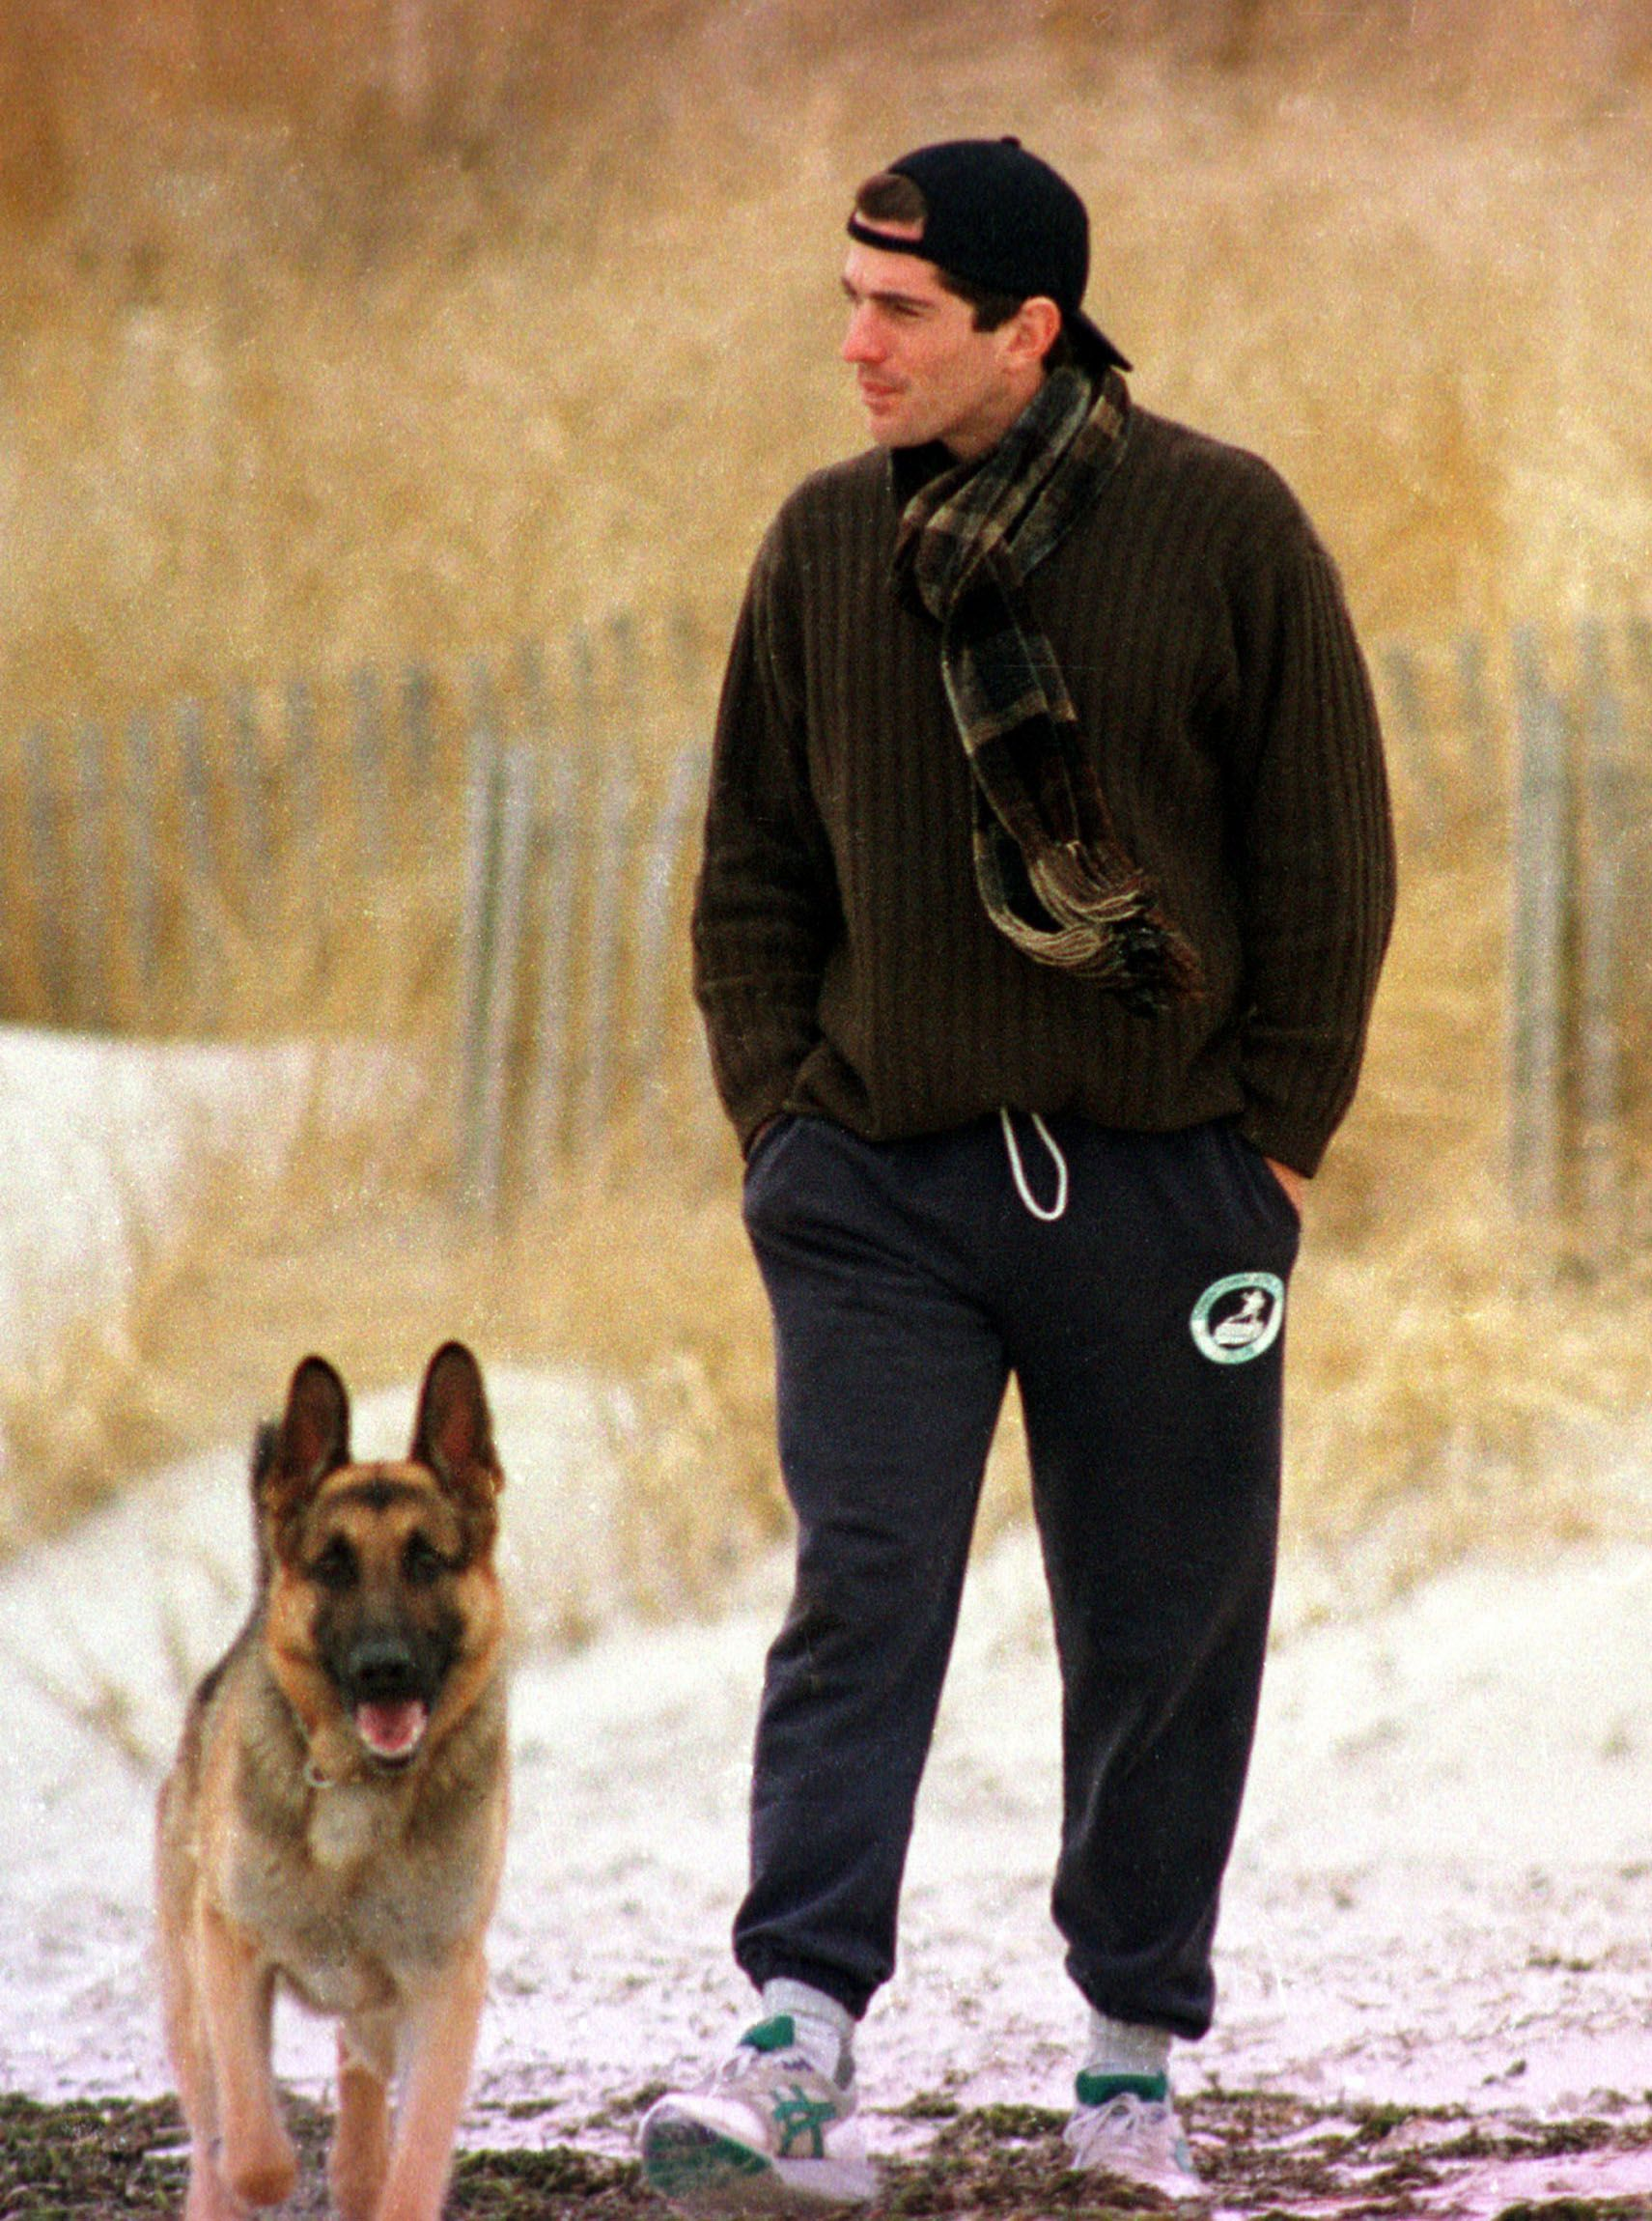 John F. Kennedy Jr. looks out to sea while walking with his dog along the beach in Hyannis Port, Massachusetts, the day after his grandmother Rose Kennedy's death on January 24, 1995.